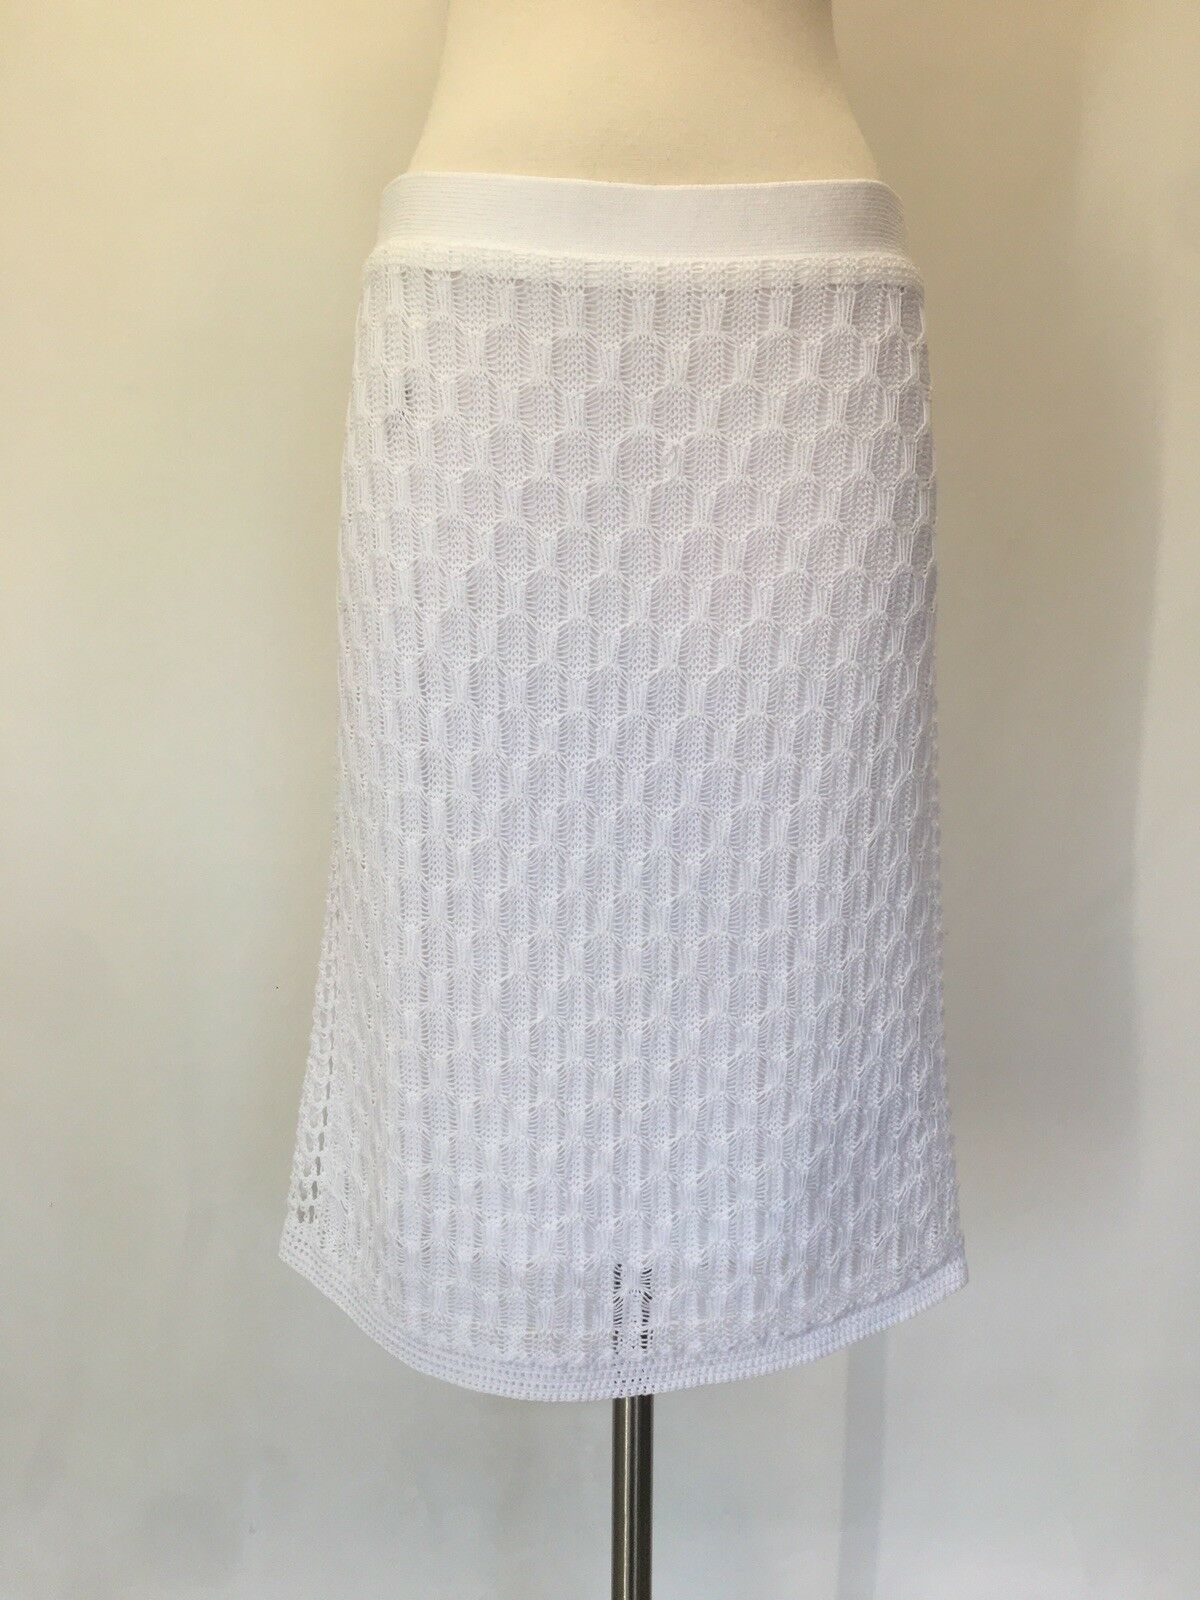 Ralph Lauren White Crochet Skirt Size L Retail  150